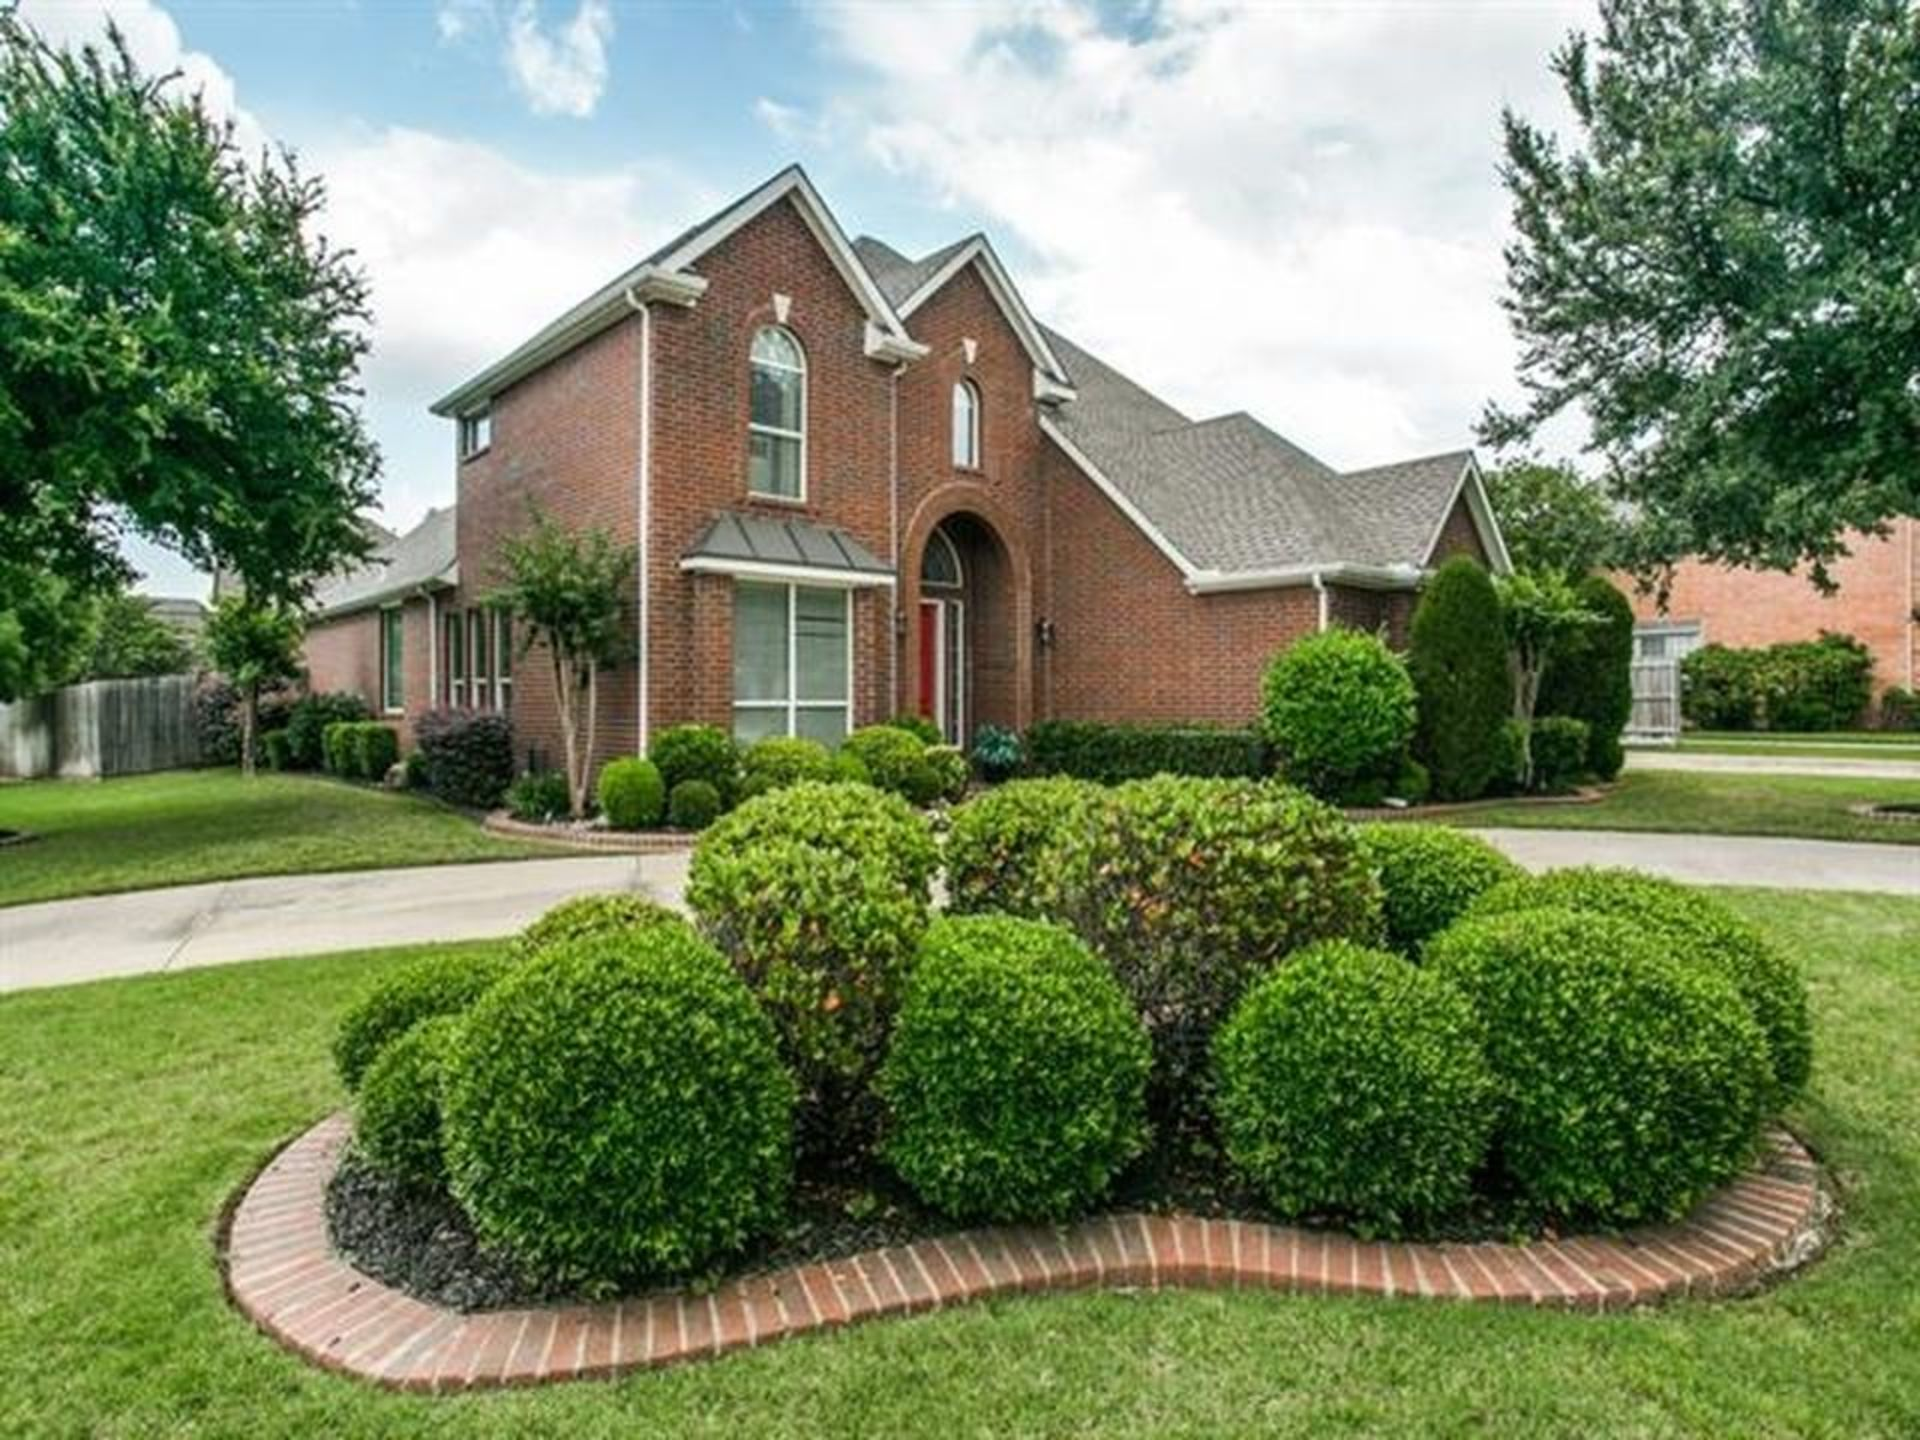 FEATURED HOME: 105 Waterford Drive in Southlake